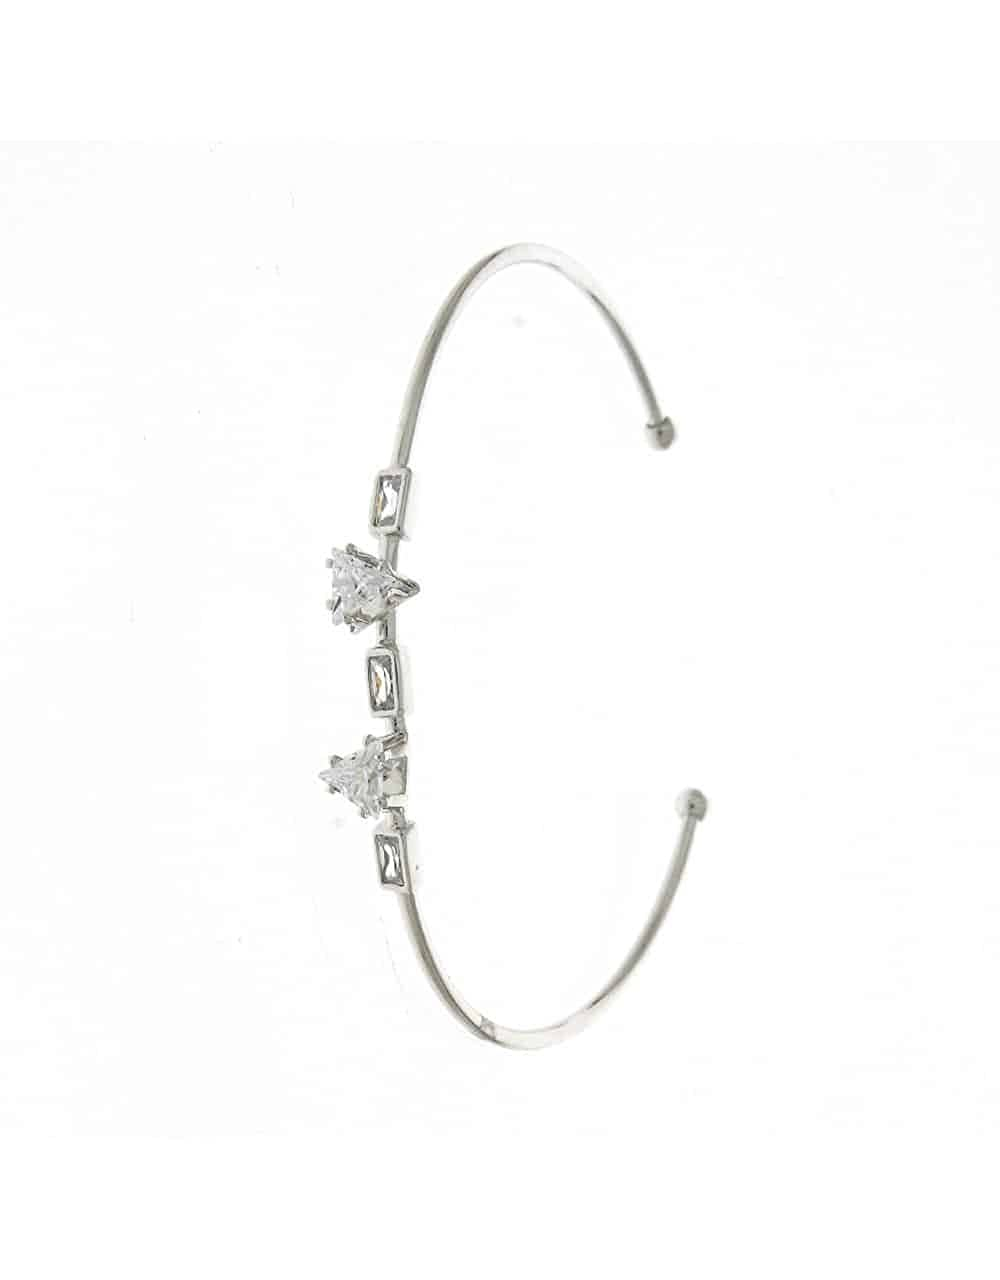 Anuradha Art Stylish Silver Tone Studded with White Stones Adjustable Kada//Hand Bracelet for Women//Girls